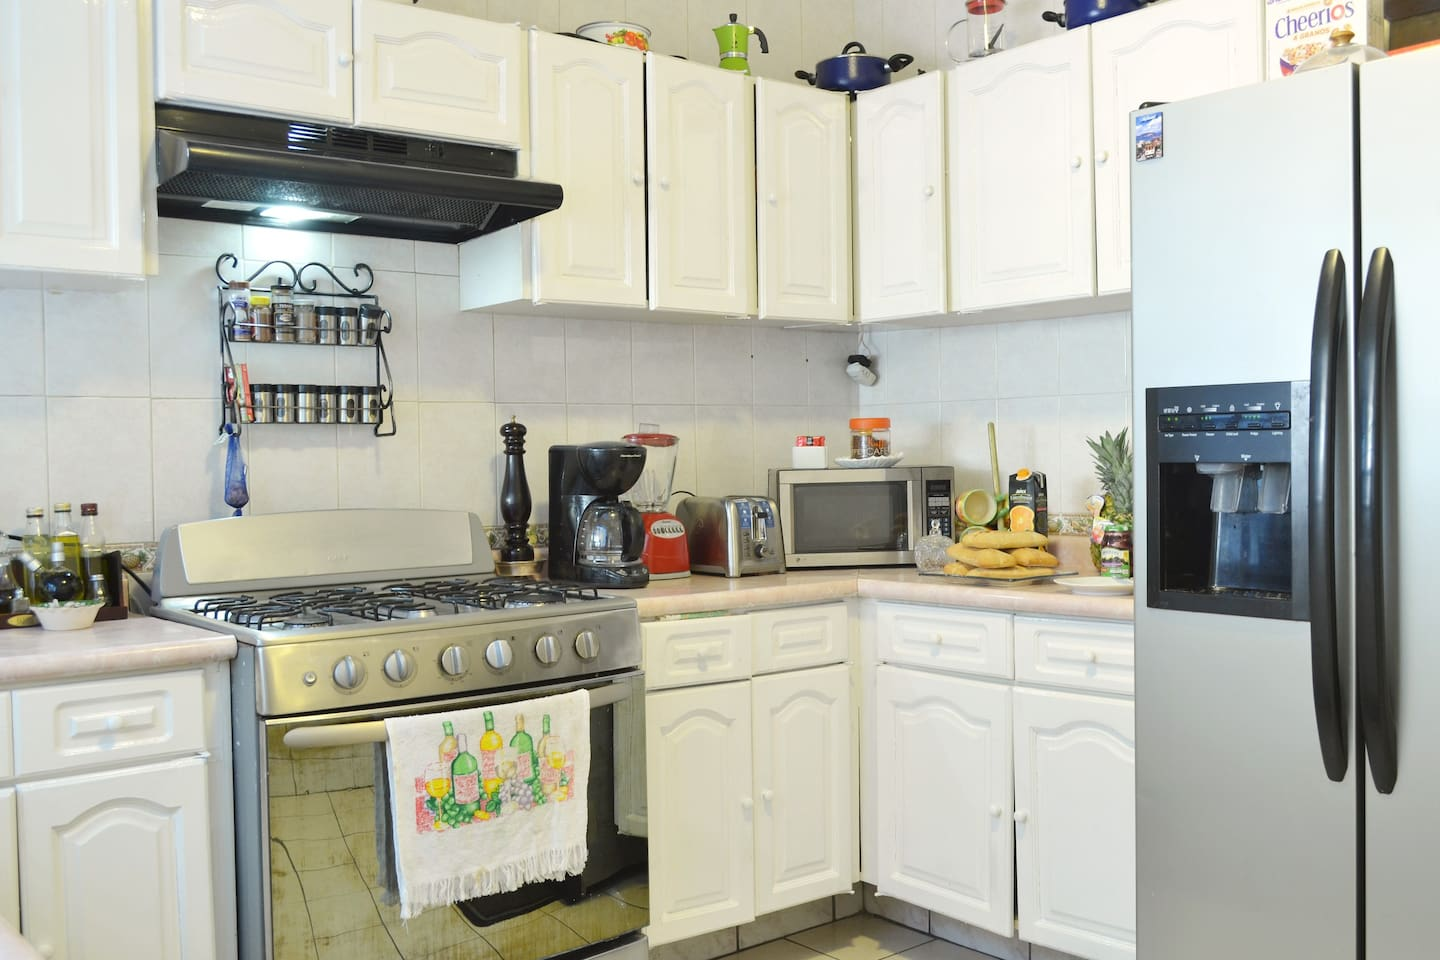 A smaller kitchen is well equipped with everything that is needed to feed a lot of people if that is what you want to do. It also is a great storage area for longer stays for business or school.